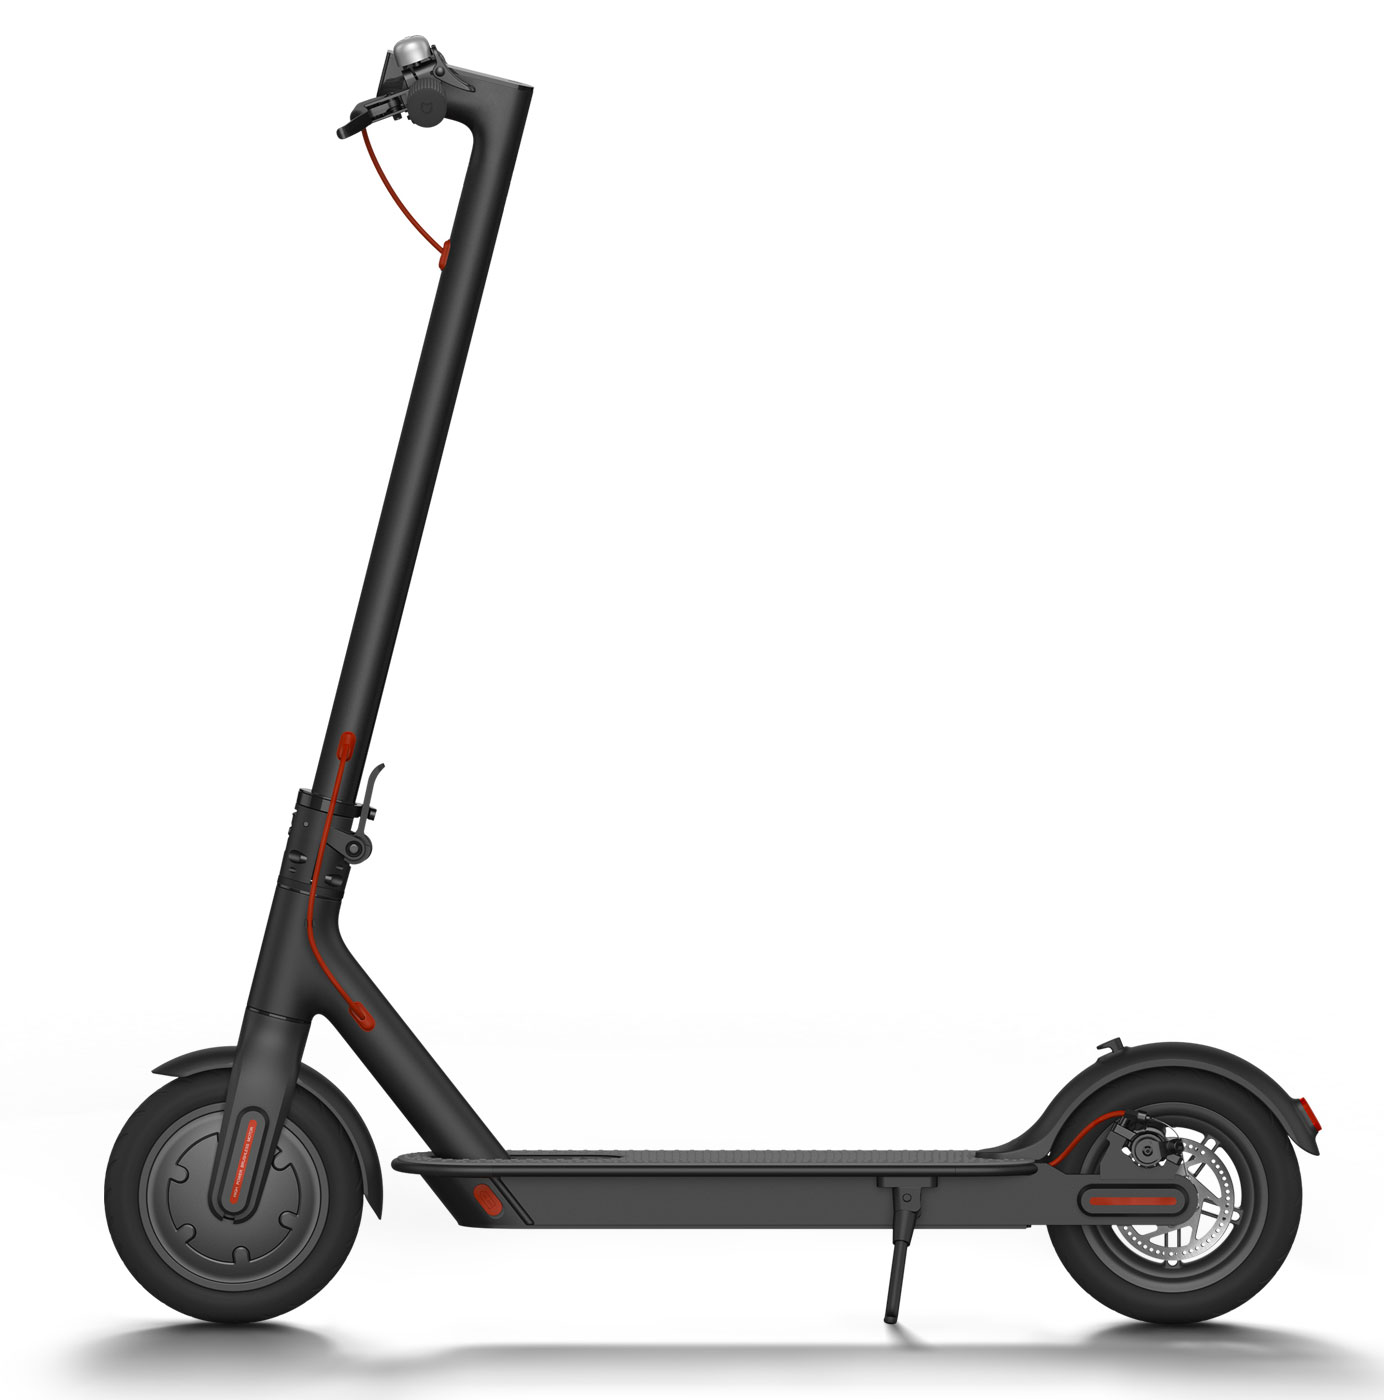 xiaomi mi electric scooter noir m365 version europ enne gyropode xiaomi sur. Black Bedroom Furniture Sets. Home Design Ideas